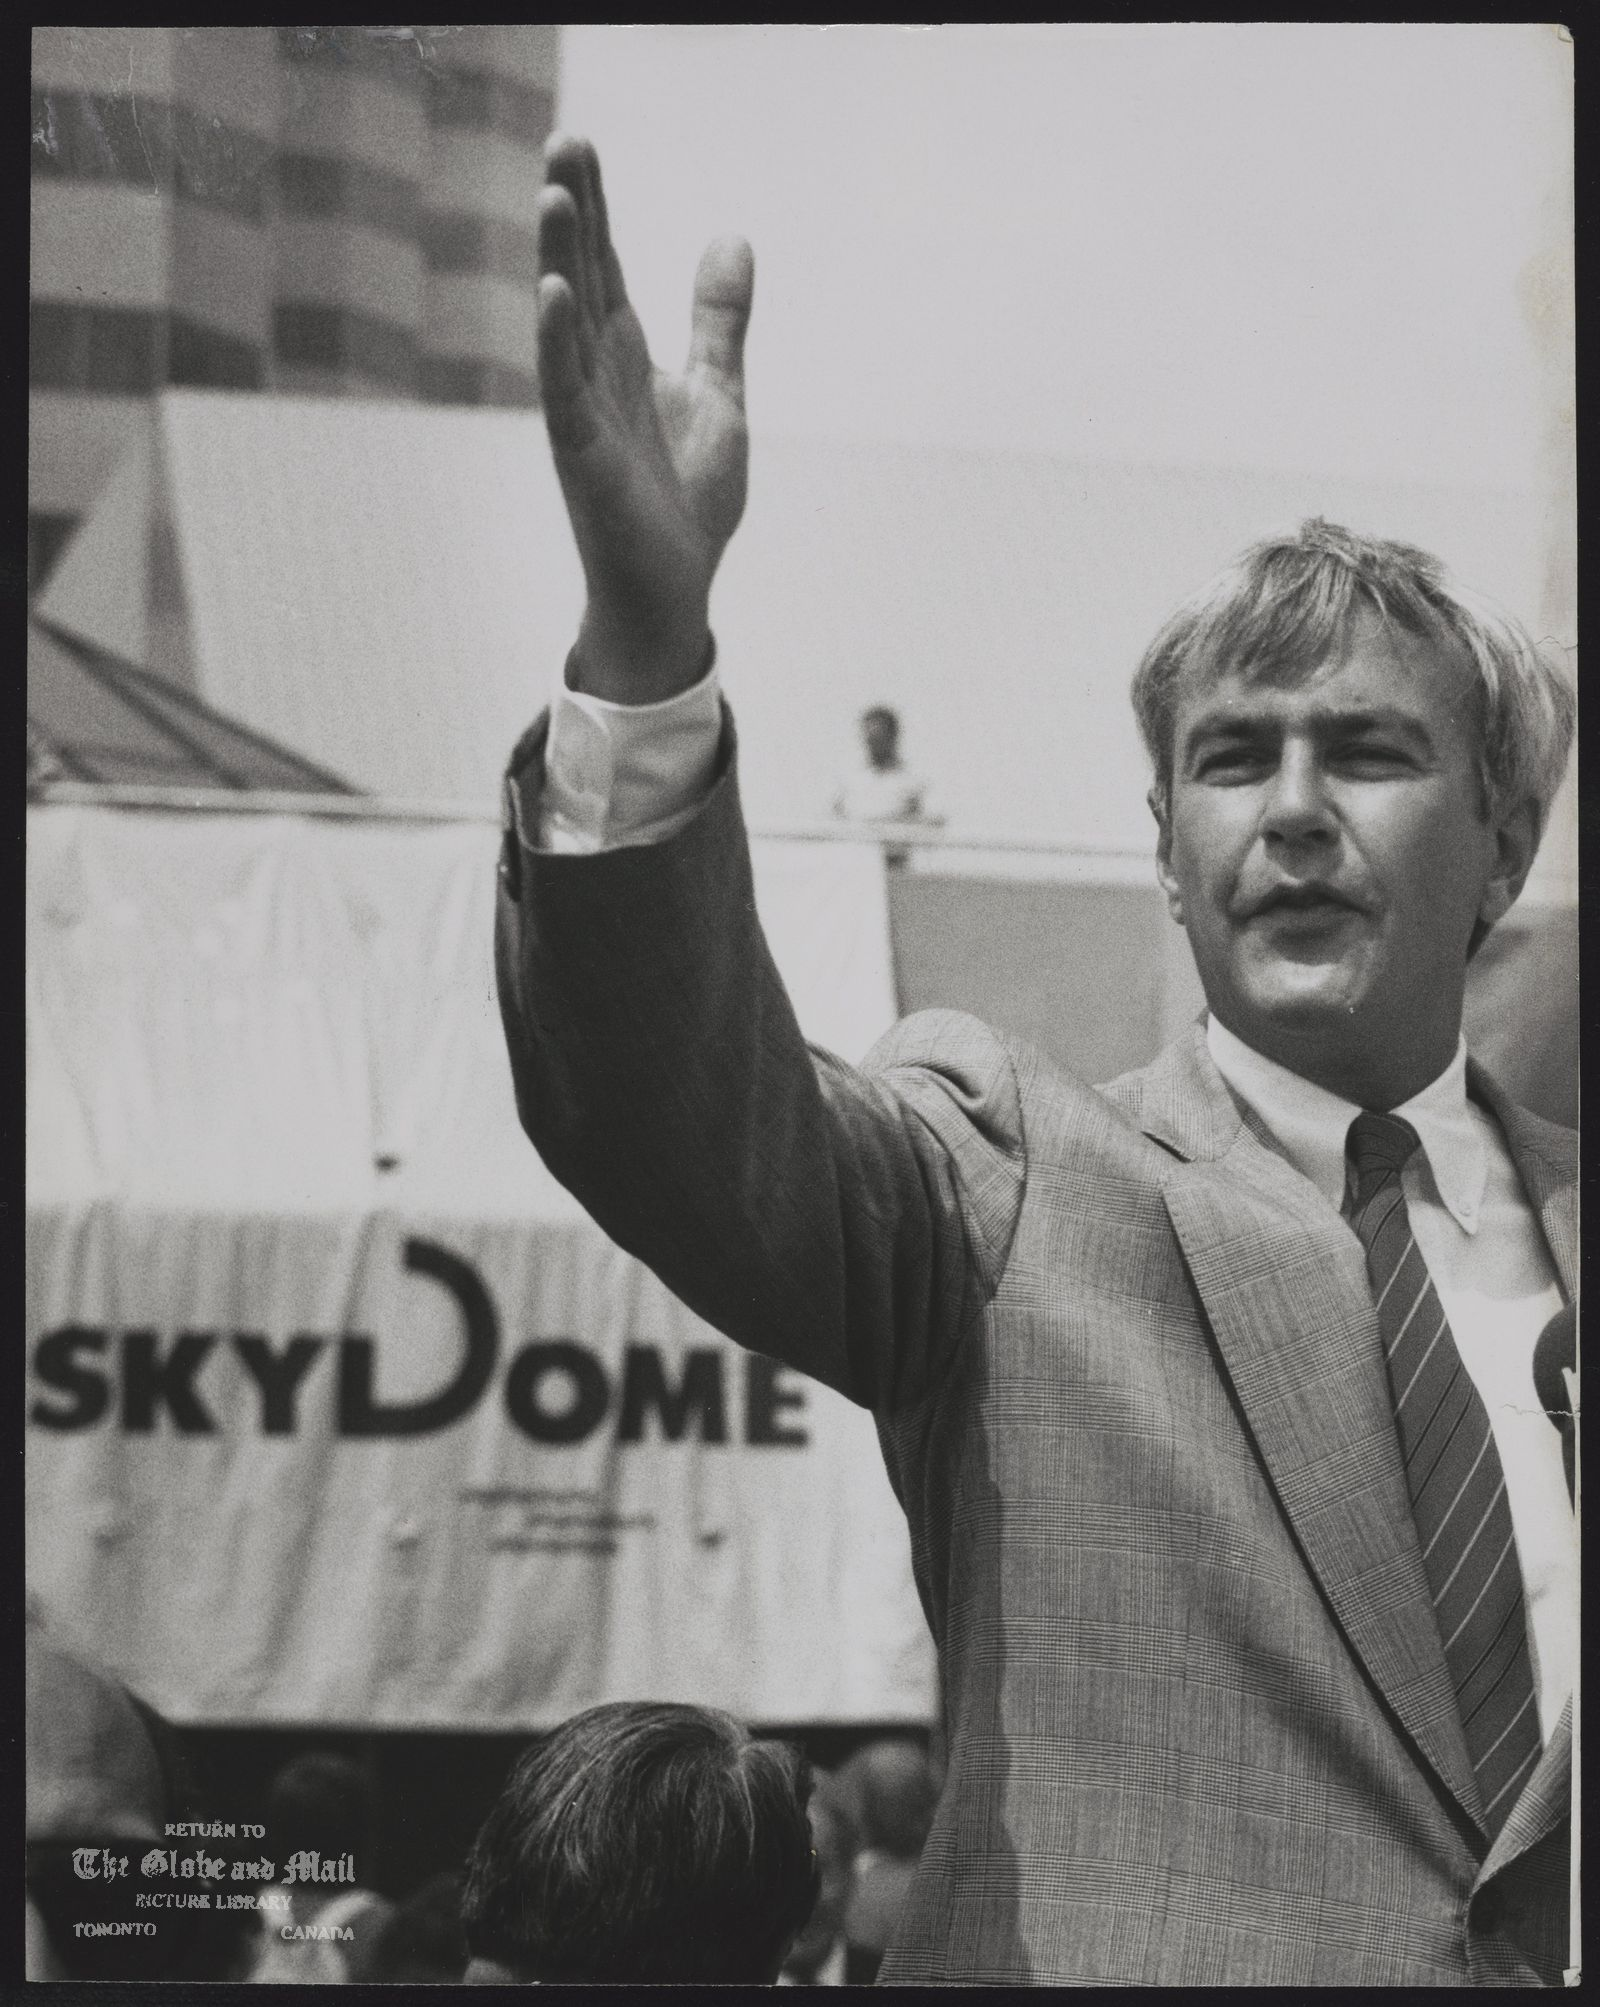 The notes transcribed from the back of this photograph are as follows: SKYDOME (Toronto) Premier David Peterson waves to onlookers yesterday during naming of the Skydome